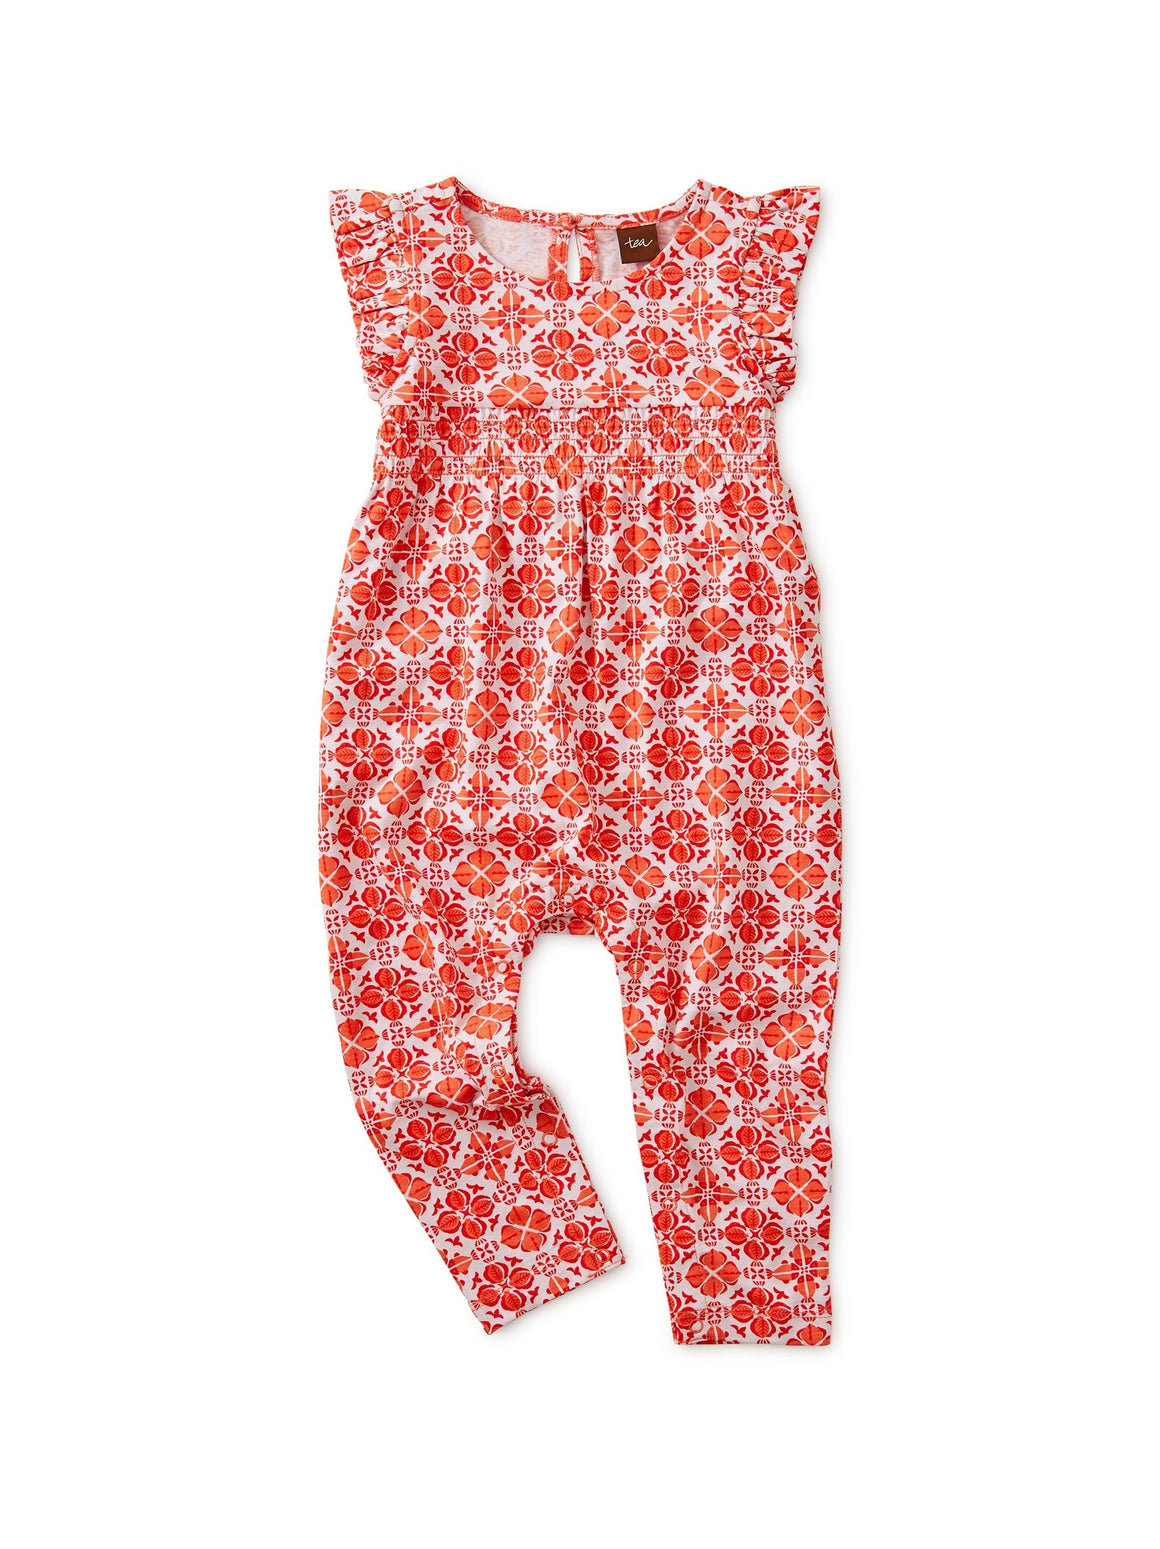 9W32523-Z22 - Tea Collection Fish Tile Ruffled Baby Romper Jumpsuits / Rompers Tea Collection